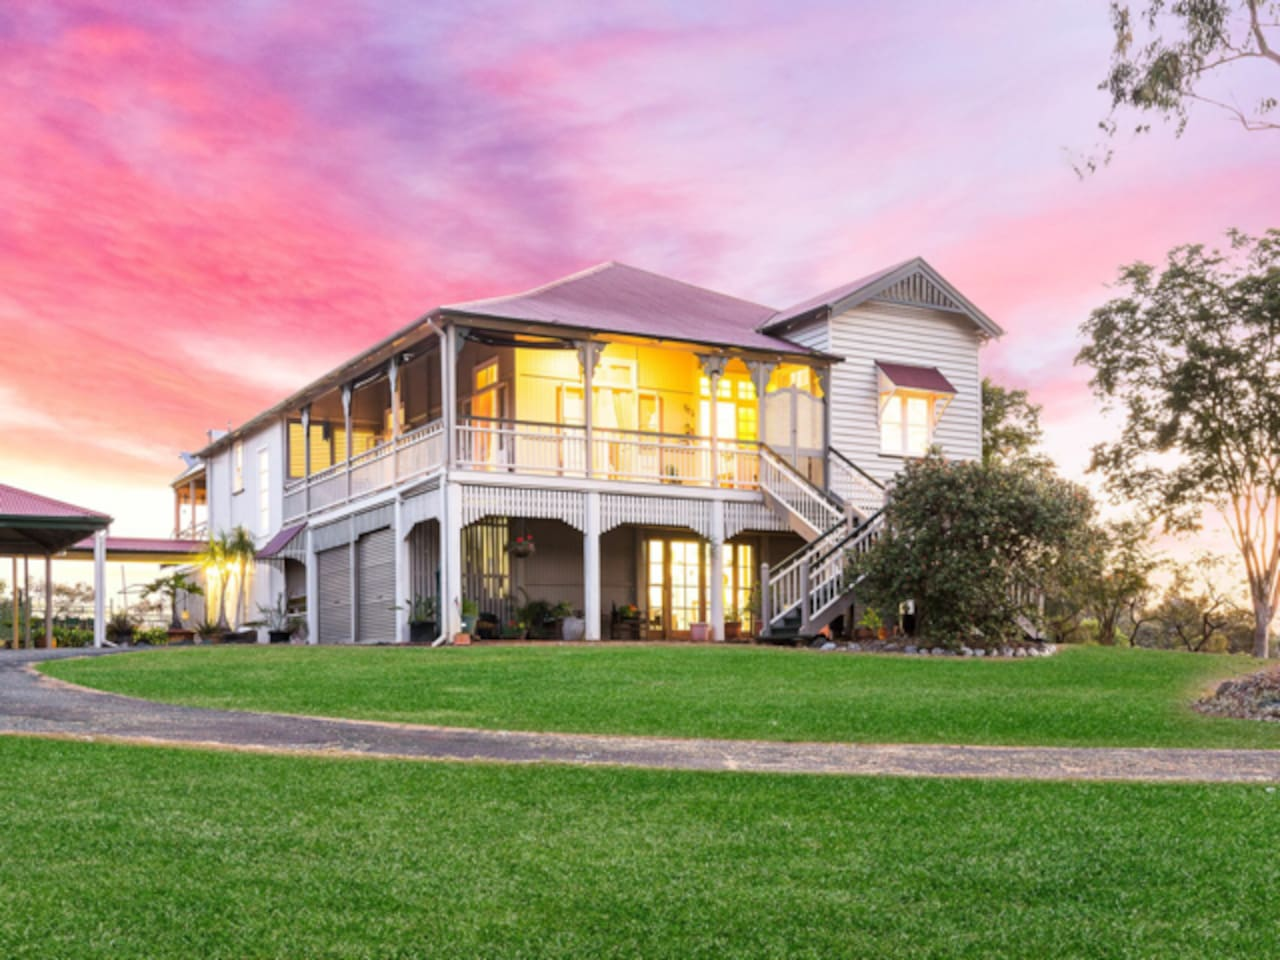 Traditional Colonial Queensland home on 1 acre within walking distance to Dayboro village.